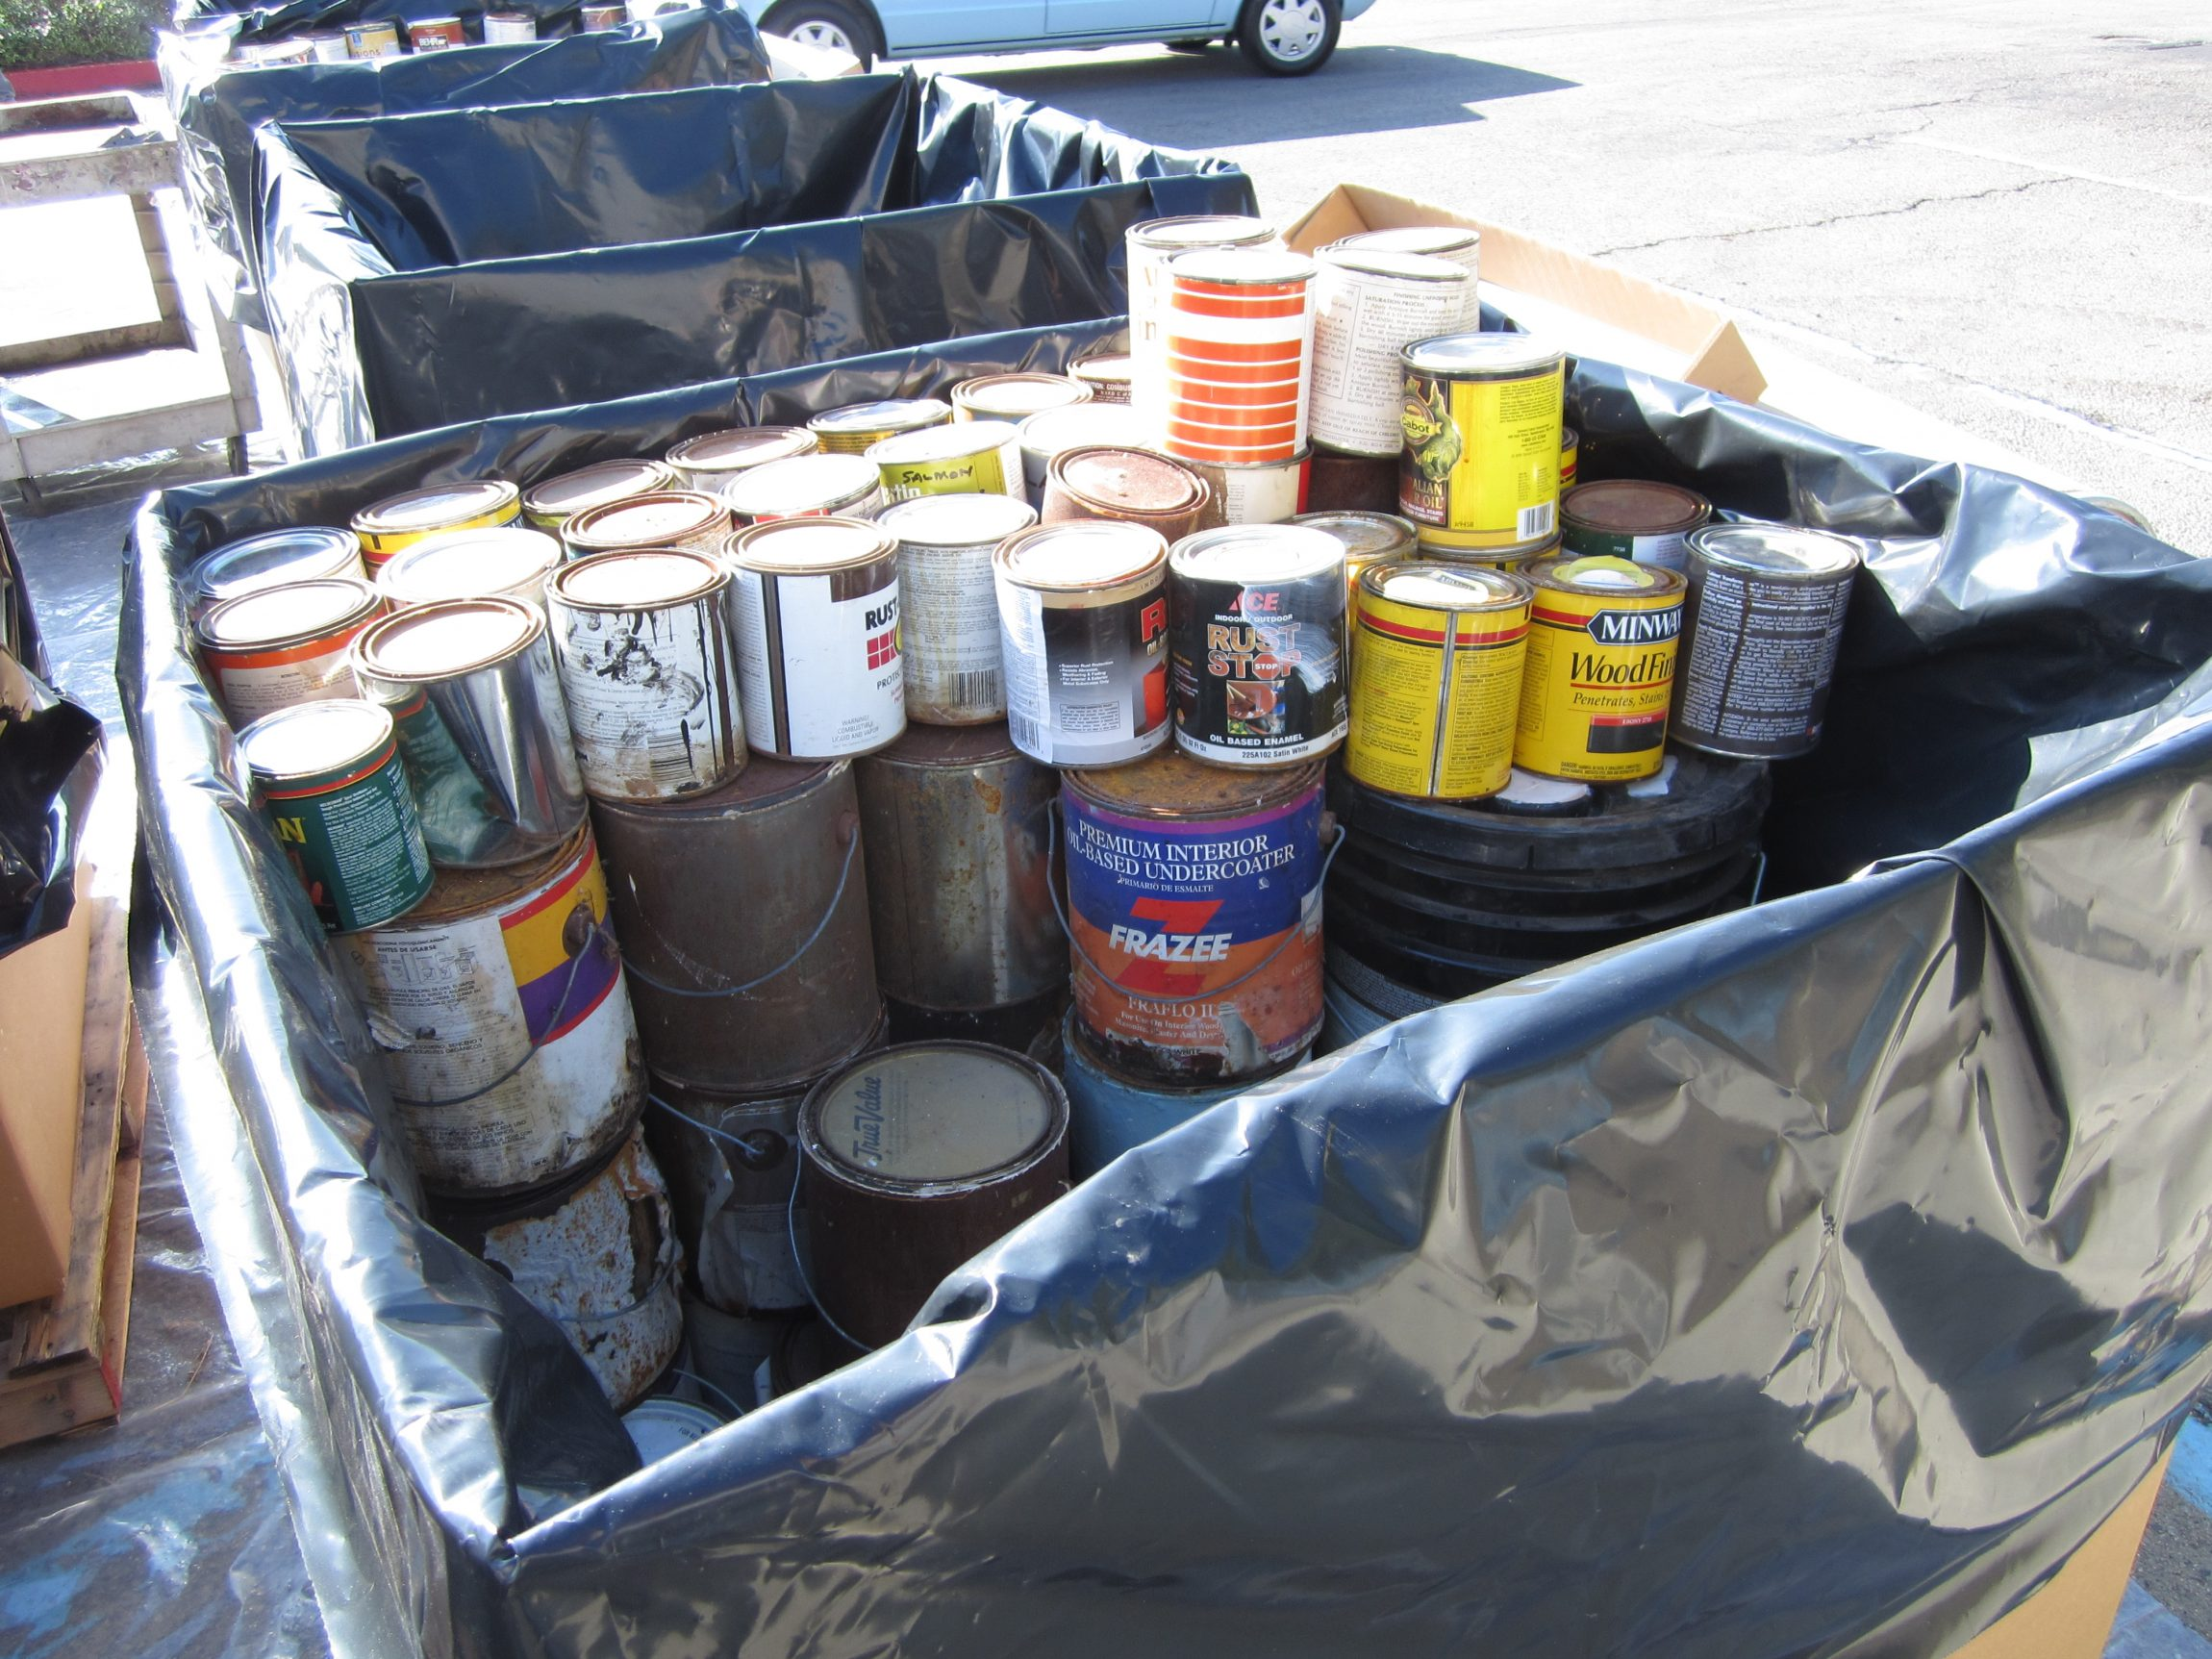 Common HHW items: paint, automotive fluids, fluorescent tubes, cleaning products, batteries and gardening chemicals.